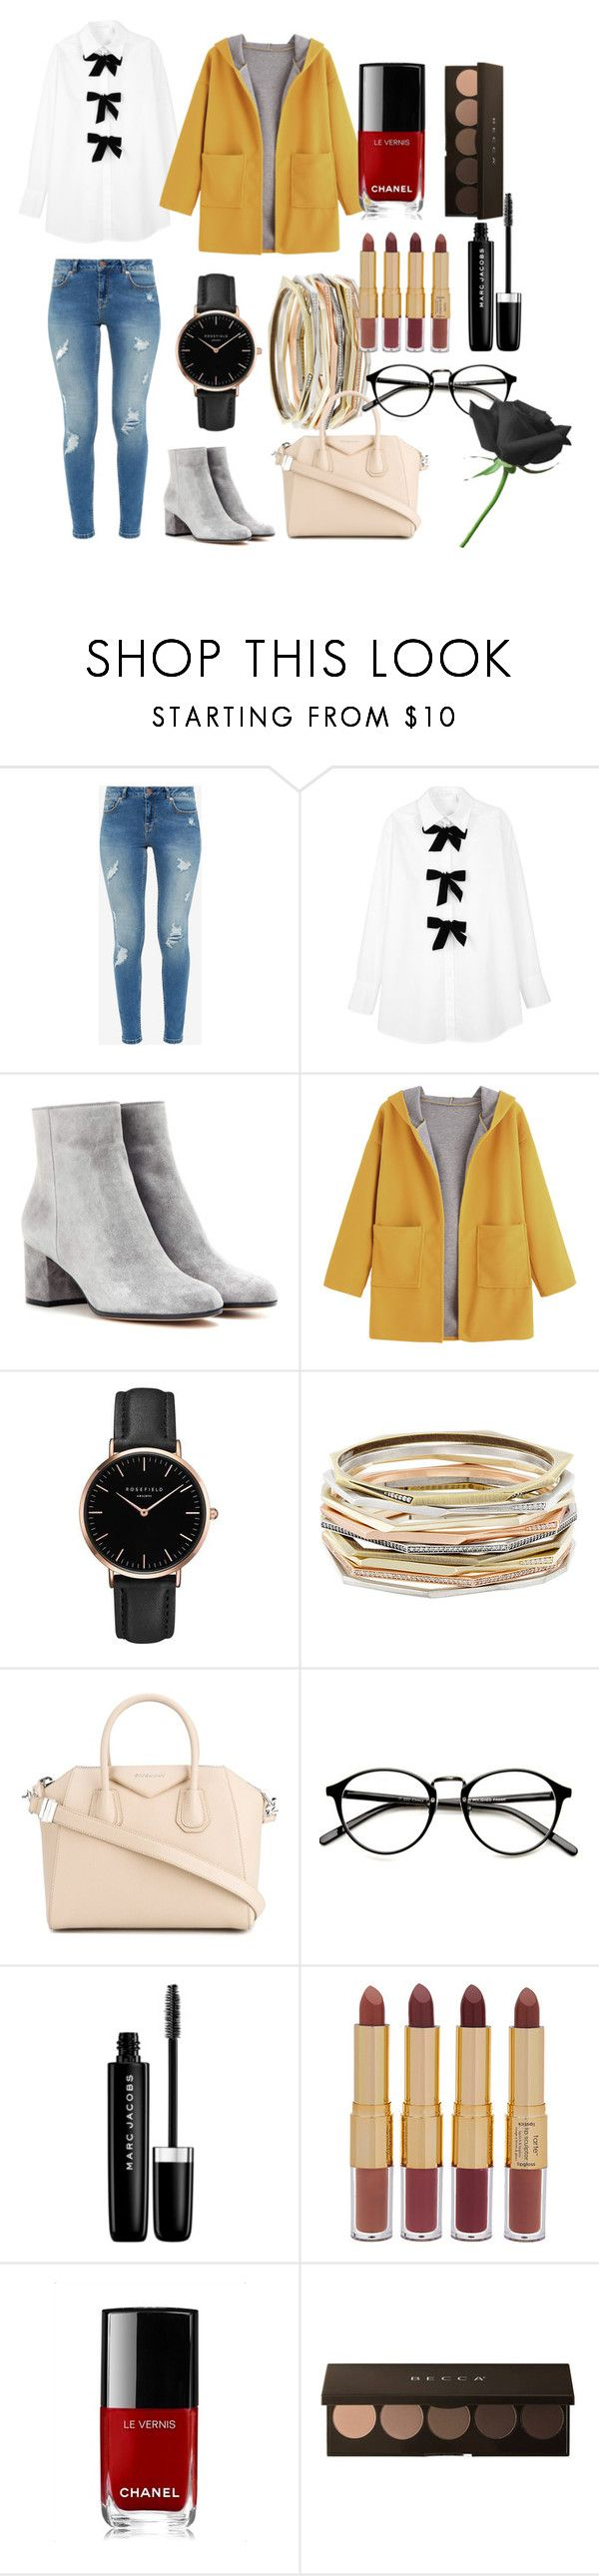 """""""Evie"""" by judehassan on Polyvore featuring Ted Baker, See by Chloé, Gianvito Rossi, Topshop, Kendra Scott, Givenchy, Marc Jacobs, tarte and Chanel"""